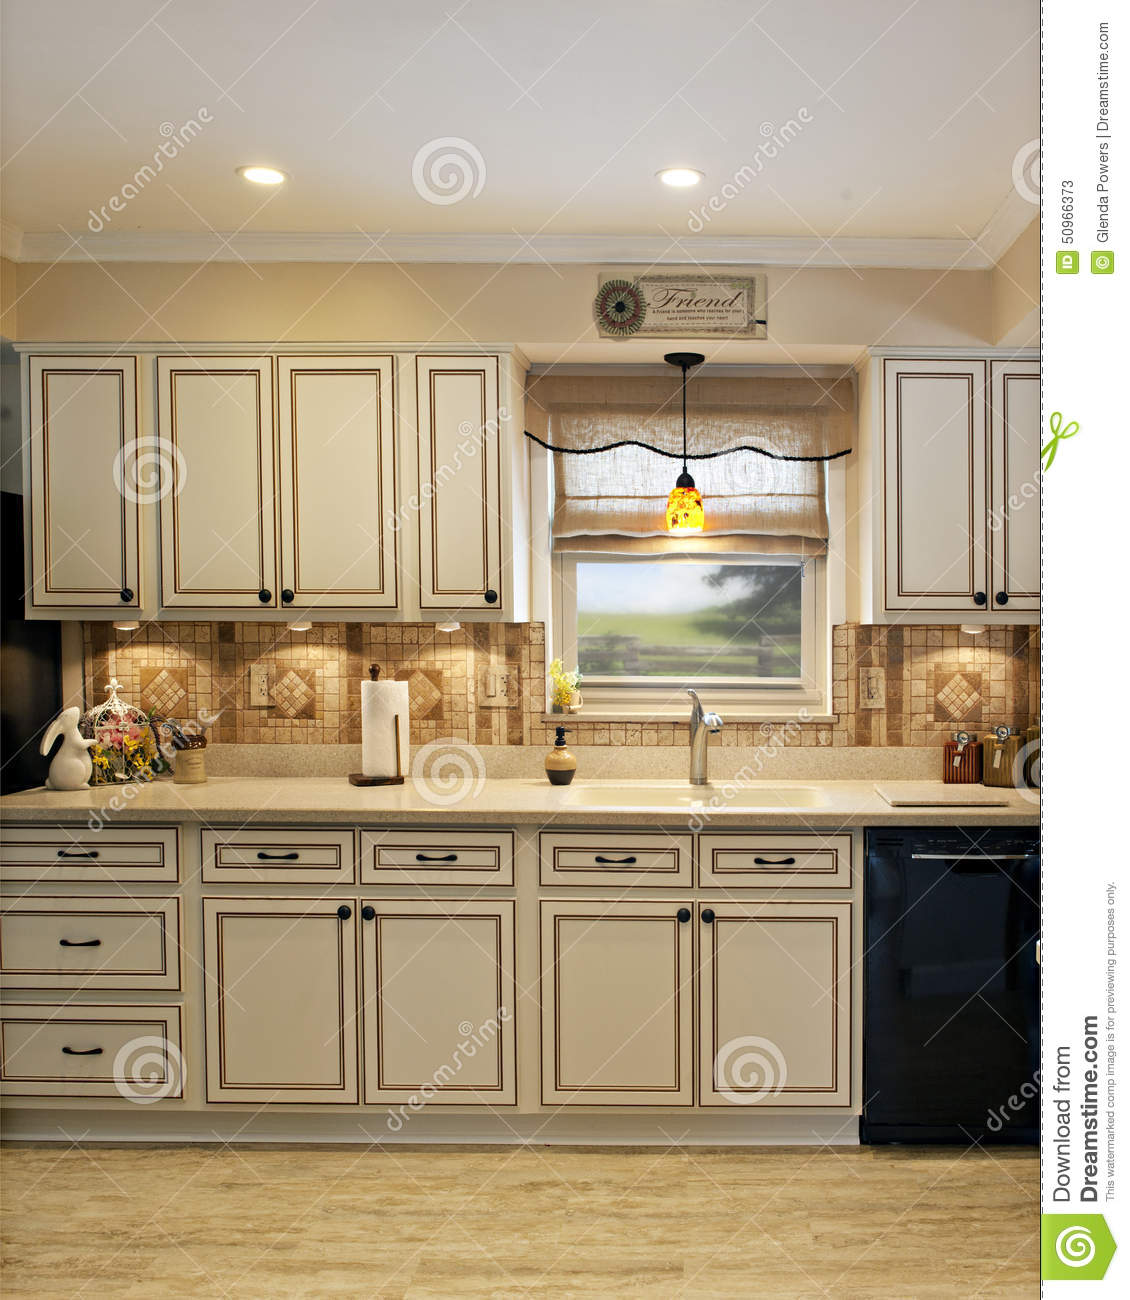 Do Yourself Home Improvement Project Kitchen Home Improvement Project Stock Image Image Of Interior